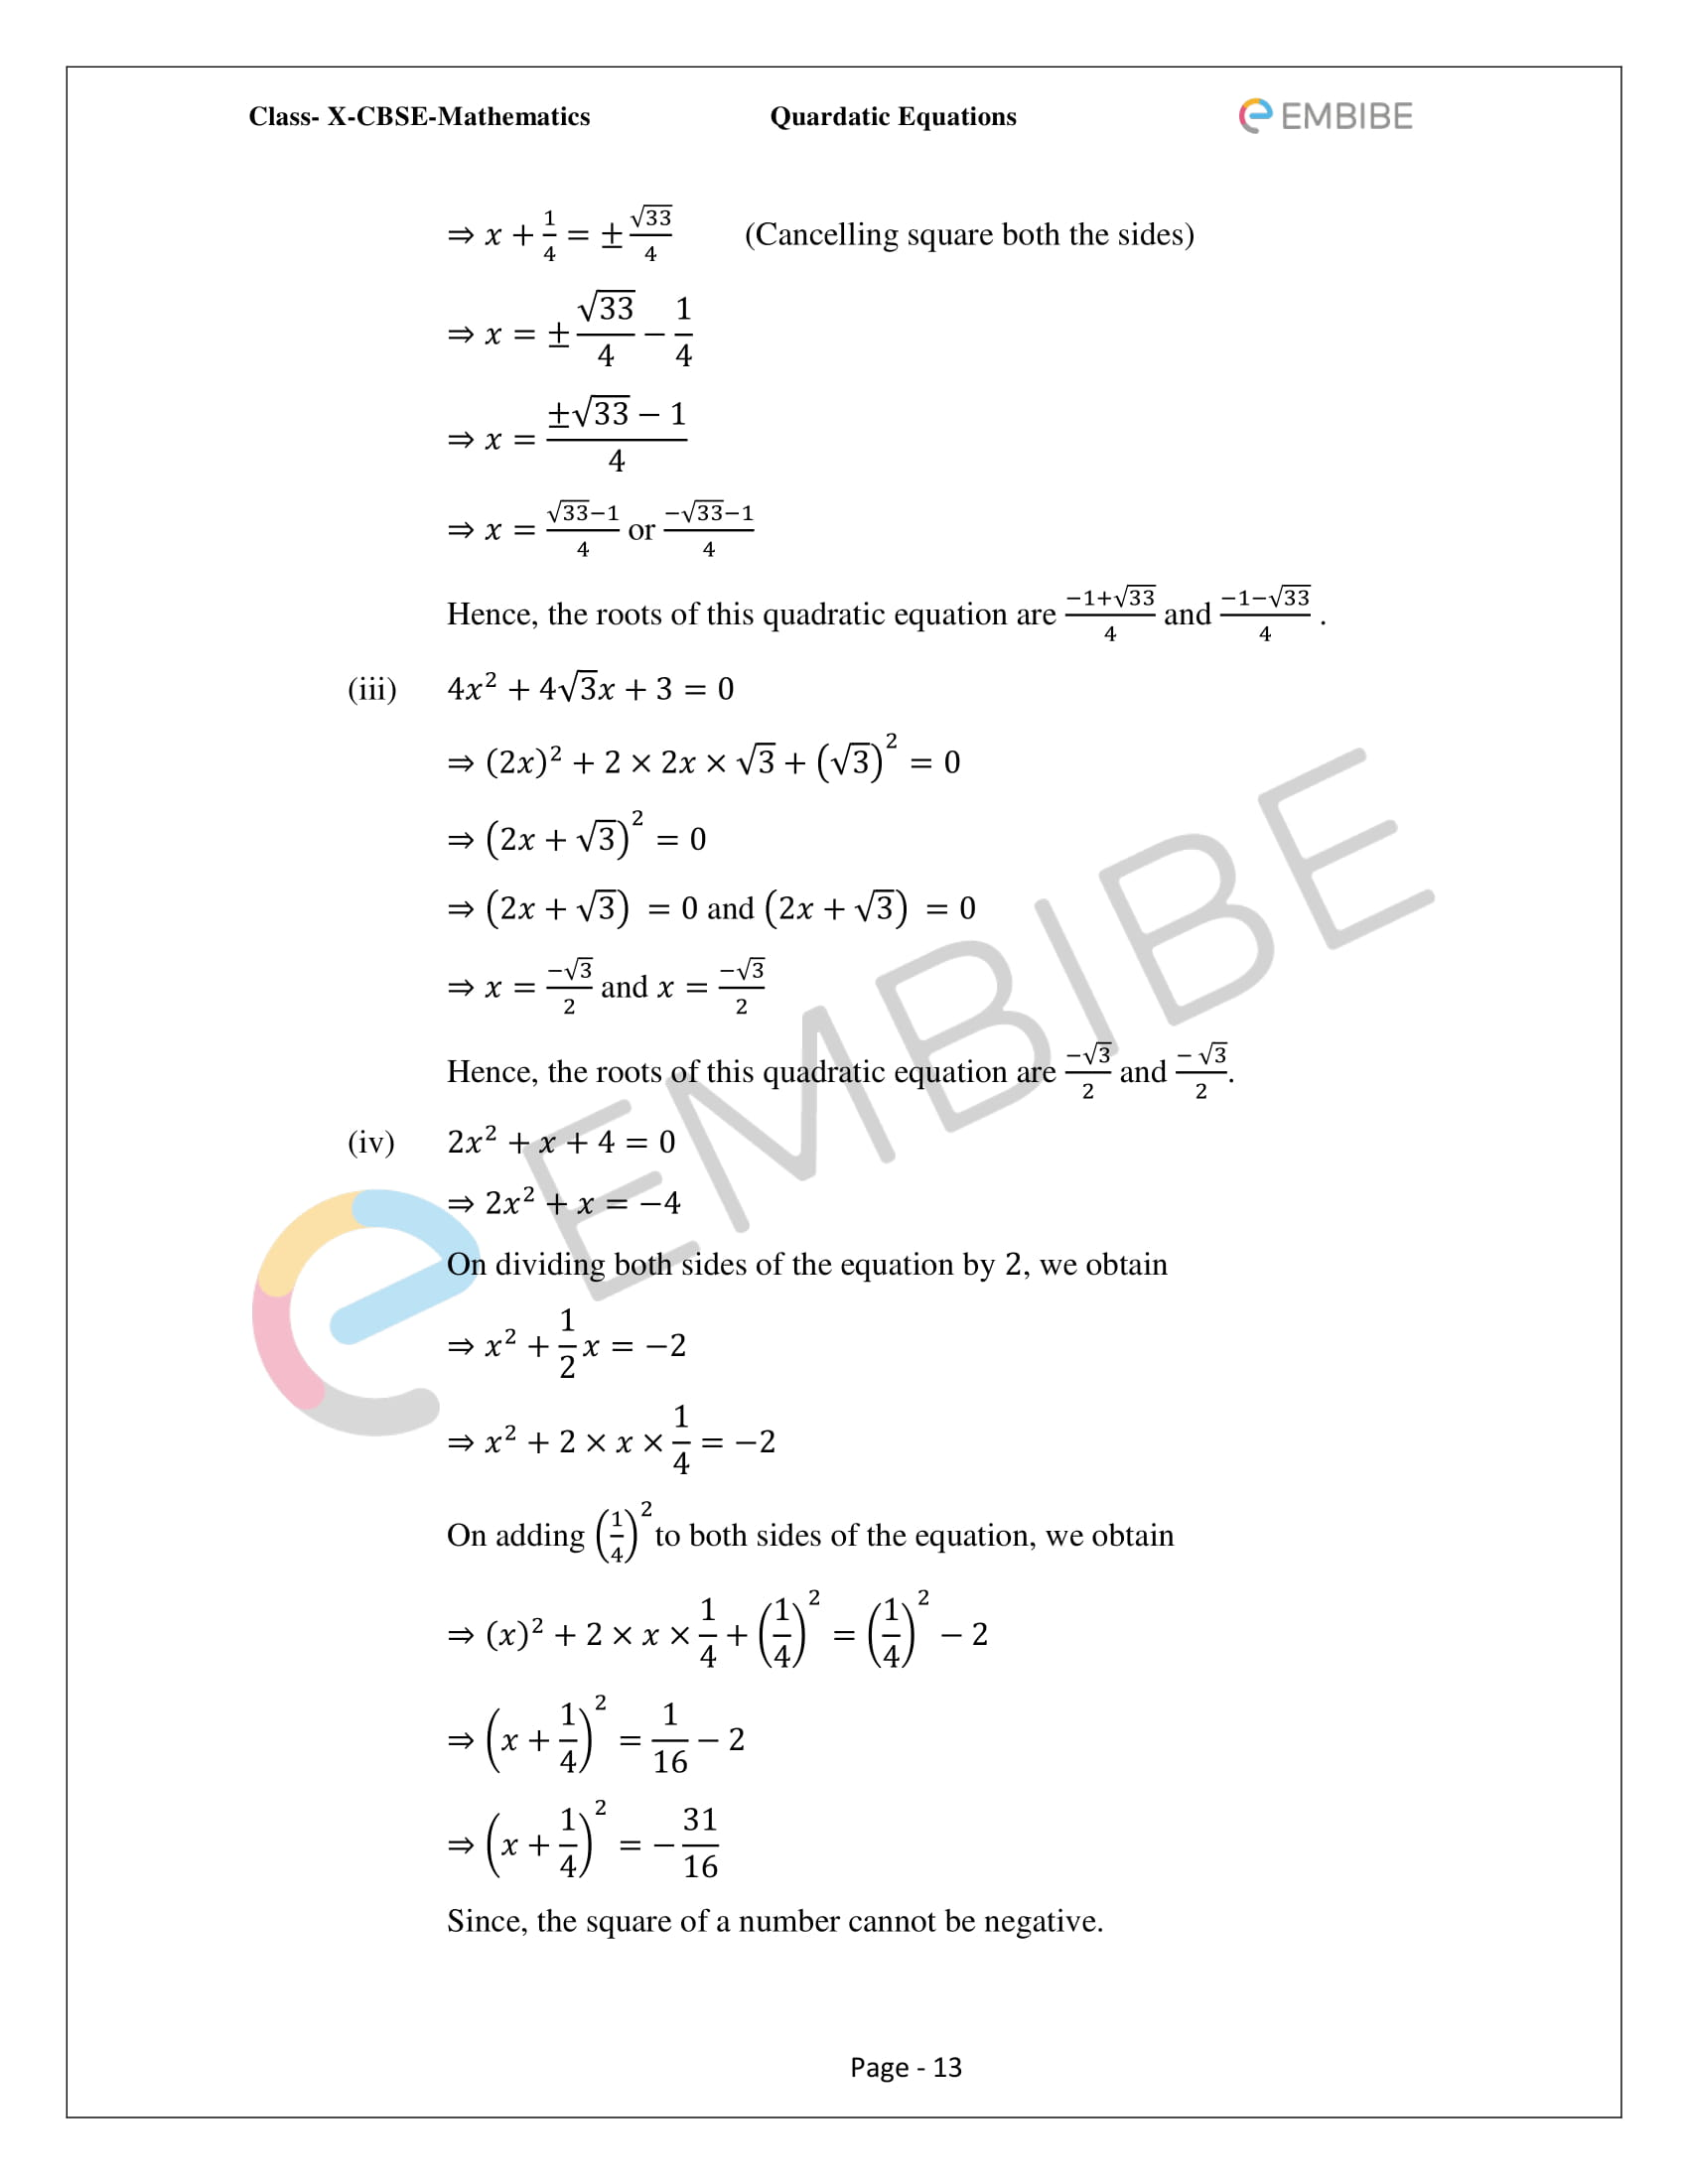 CBSE NCERT Solutions For Class 10 Maths Chapter 4 – Quadratic Equations - 13